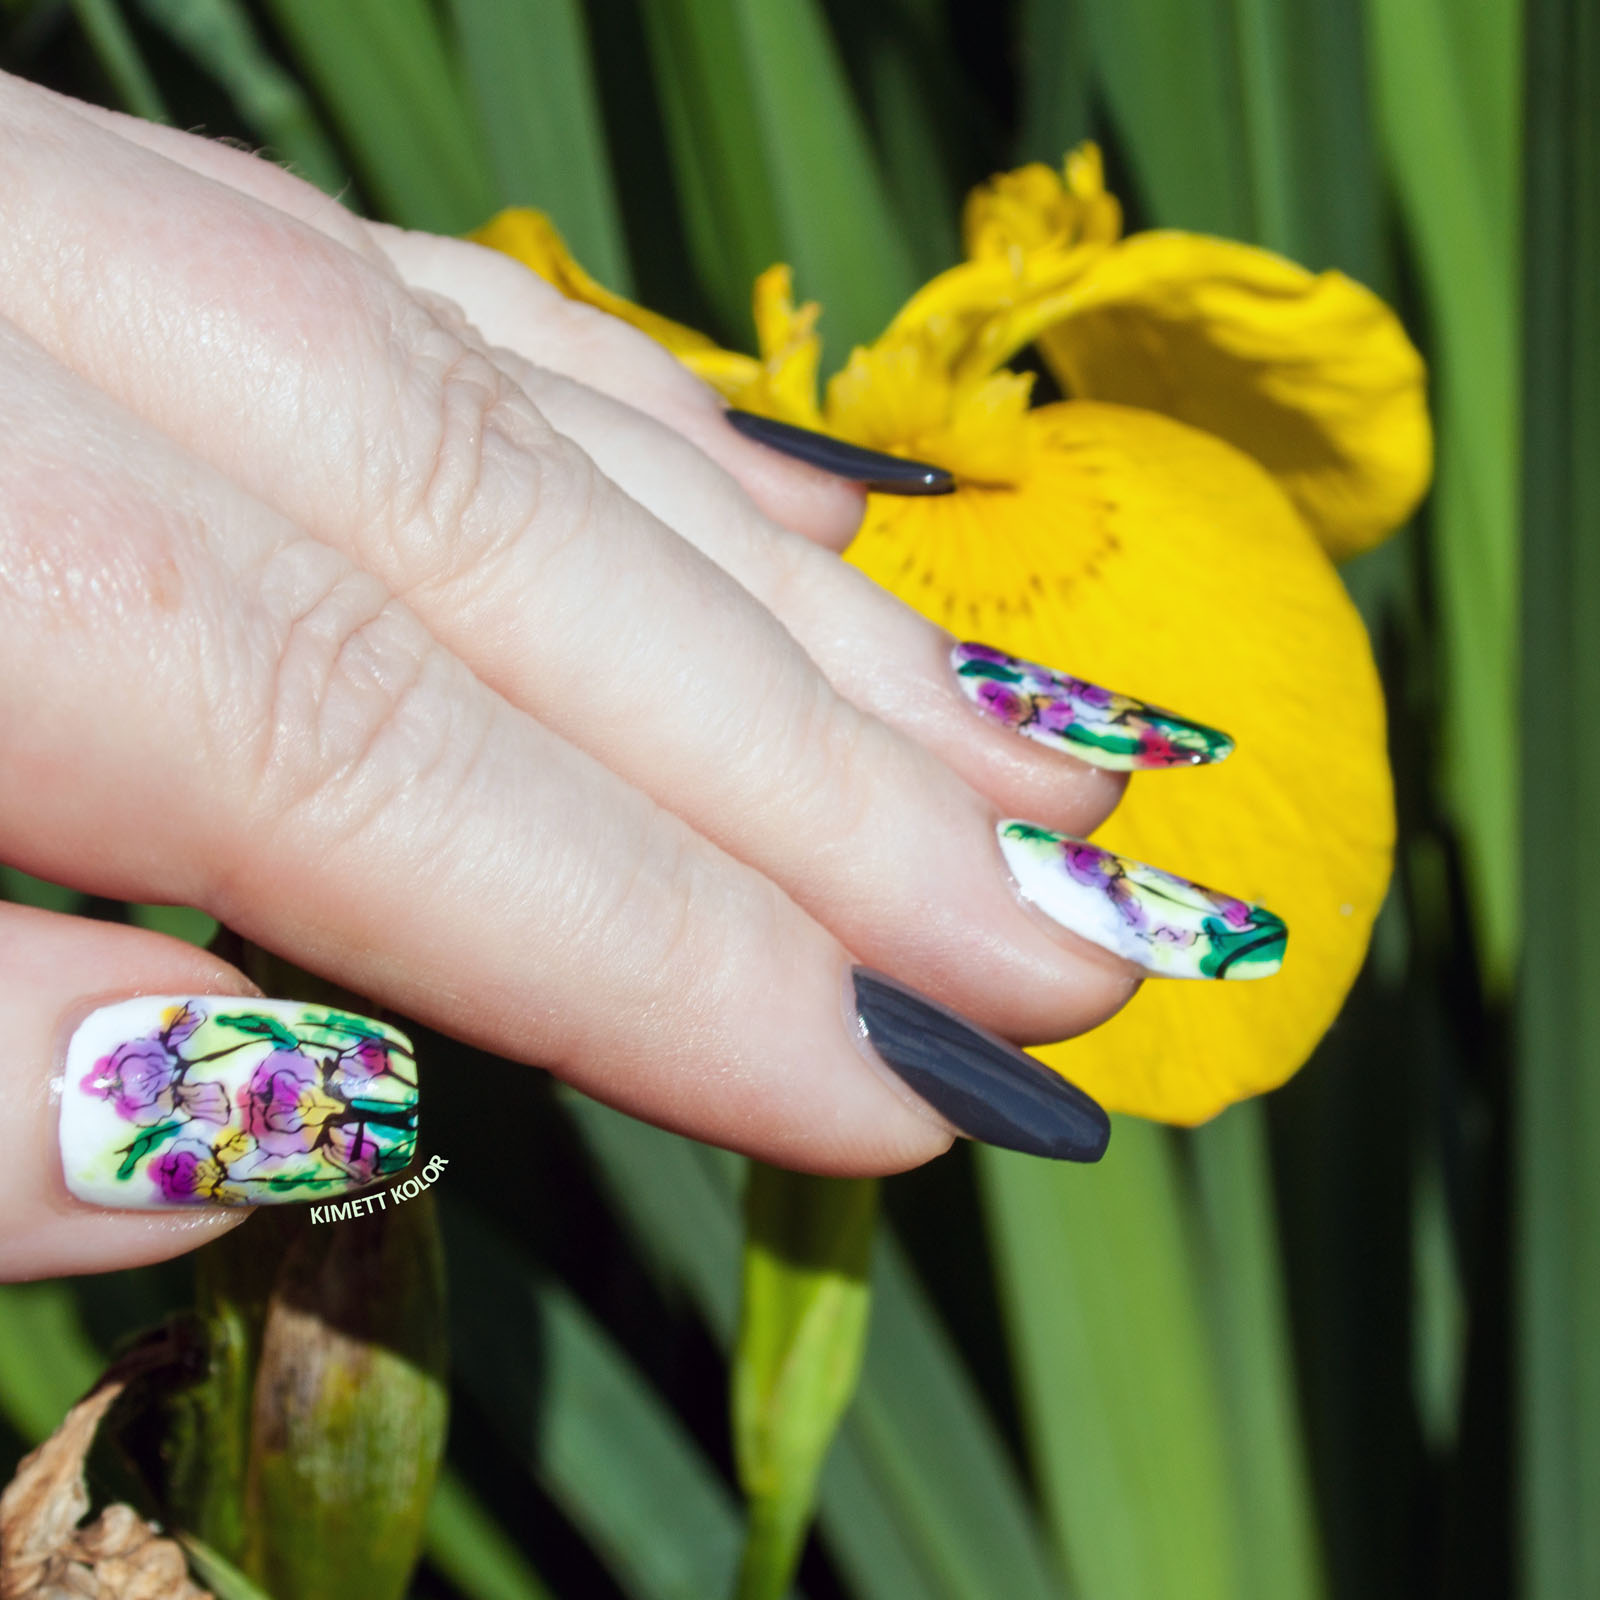 Kimett Kolor summer floral nail art with iris